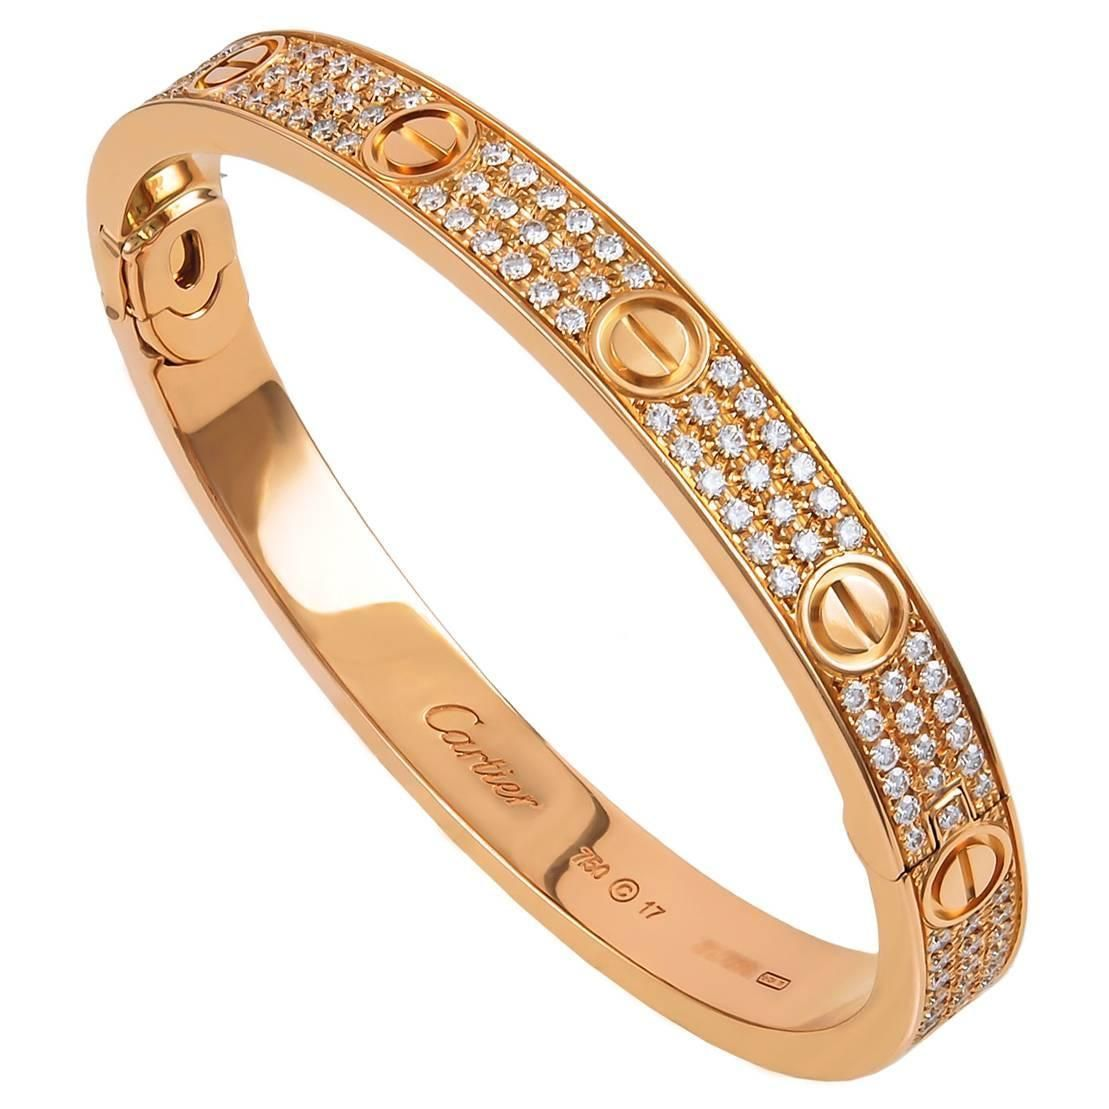 6711a6c56 Cartier Diamond Pave Gold Love Bracelet | From a unique collection of  vintage bangles at https